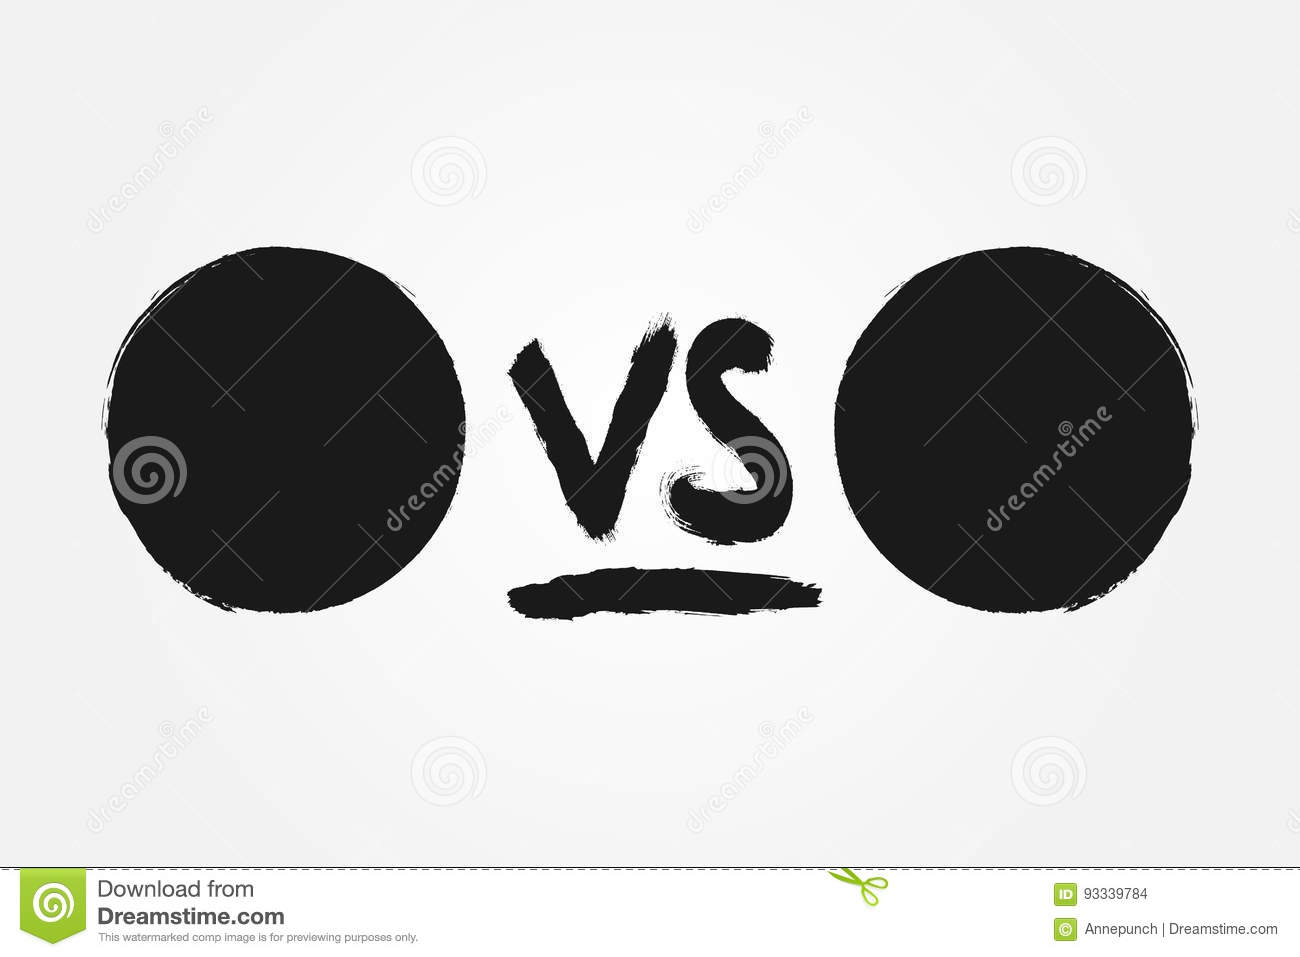 Template for versus. Round backgrounds and handwriting VS. Drawn with a rough brush.